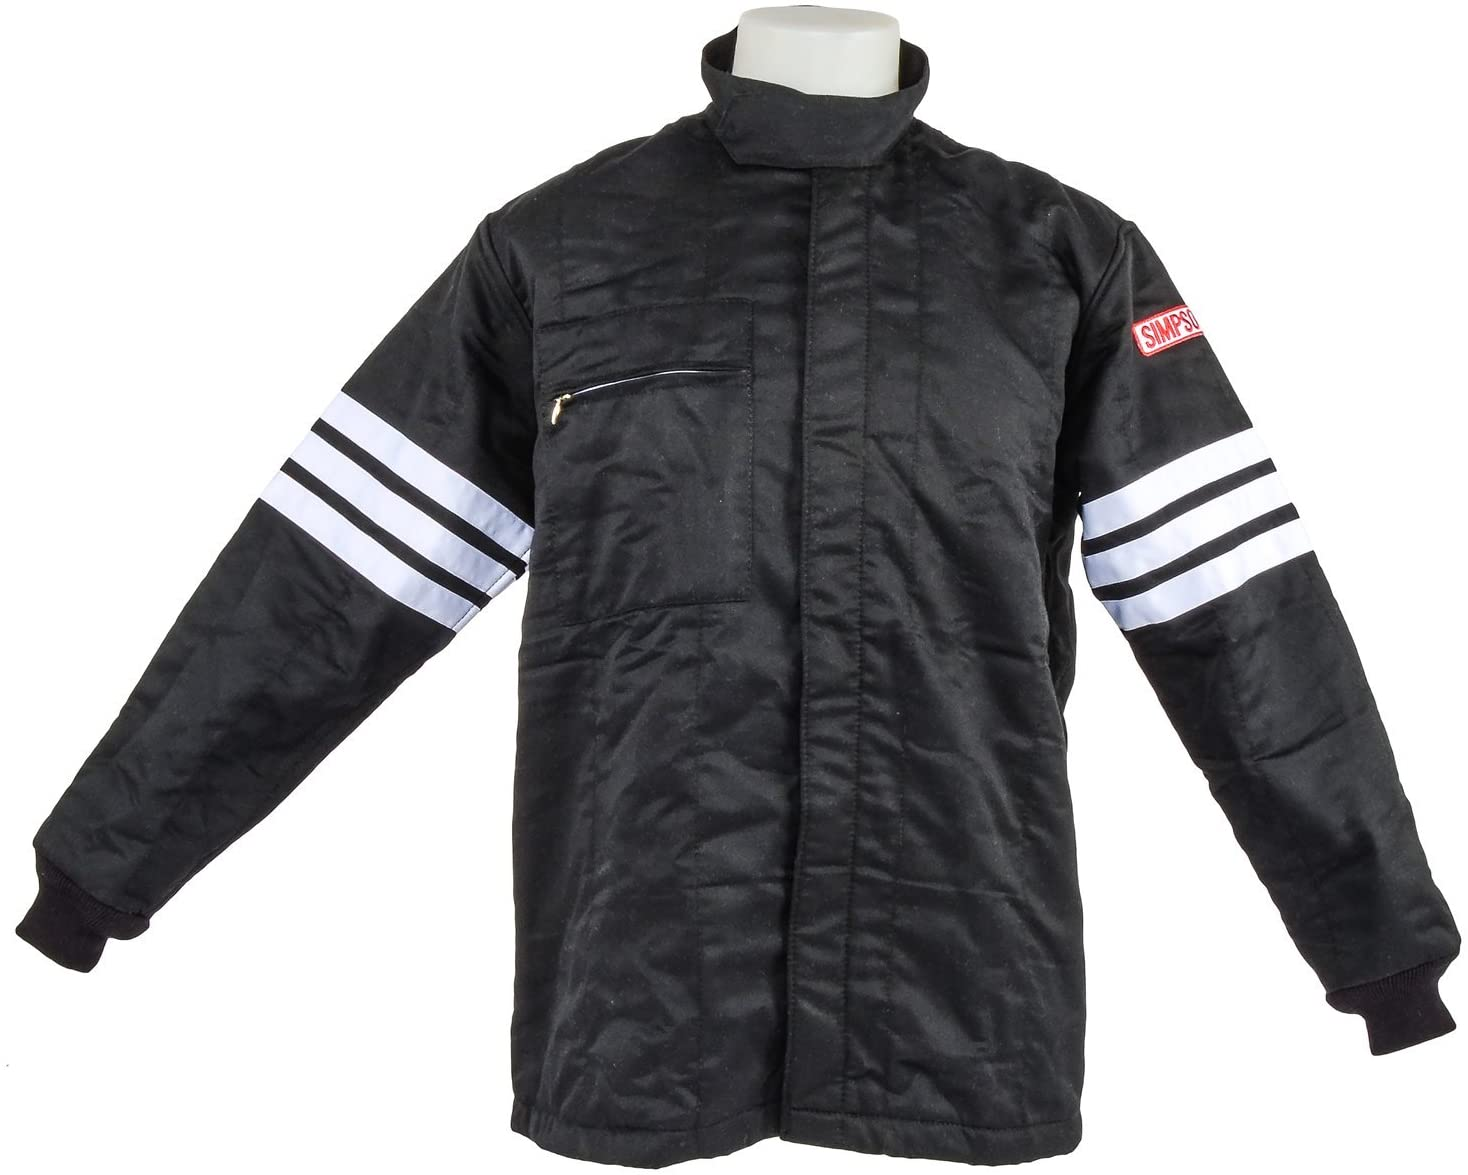 SIMPSON 0302312 Black Large Standard-6 Single Layer Driving Jacket